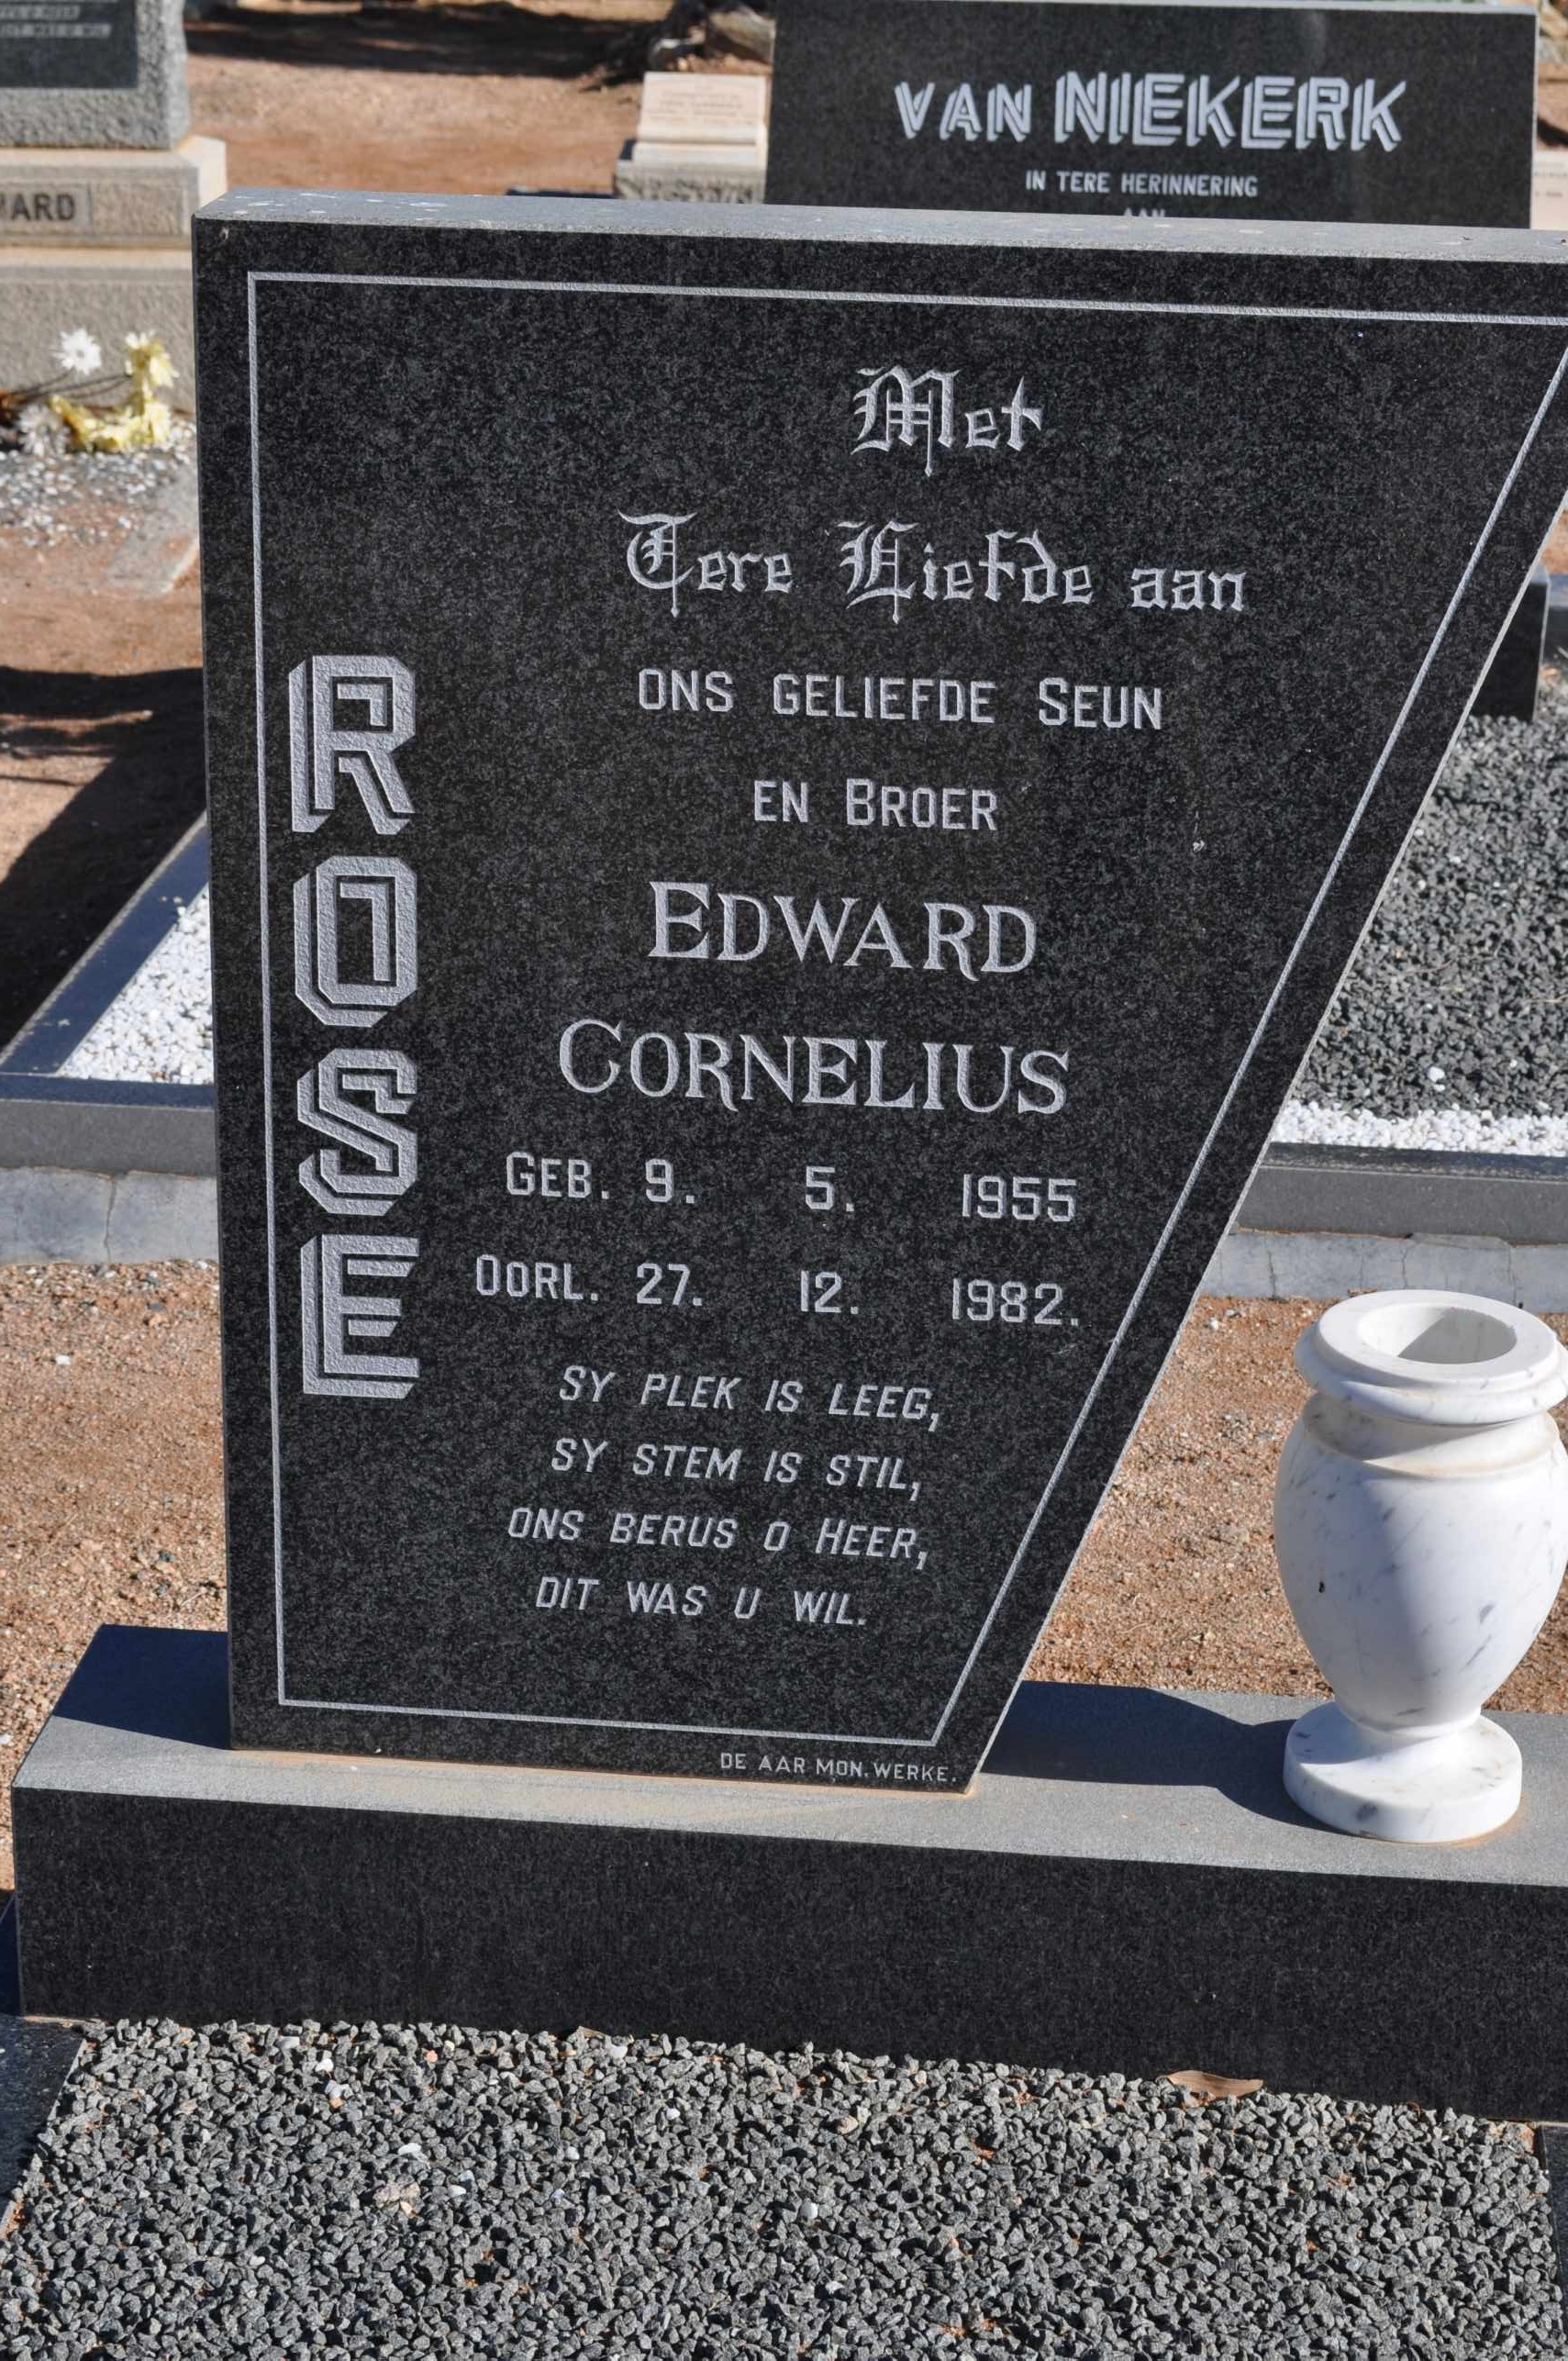 Rose, Edward Cornelius